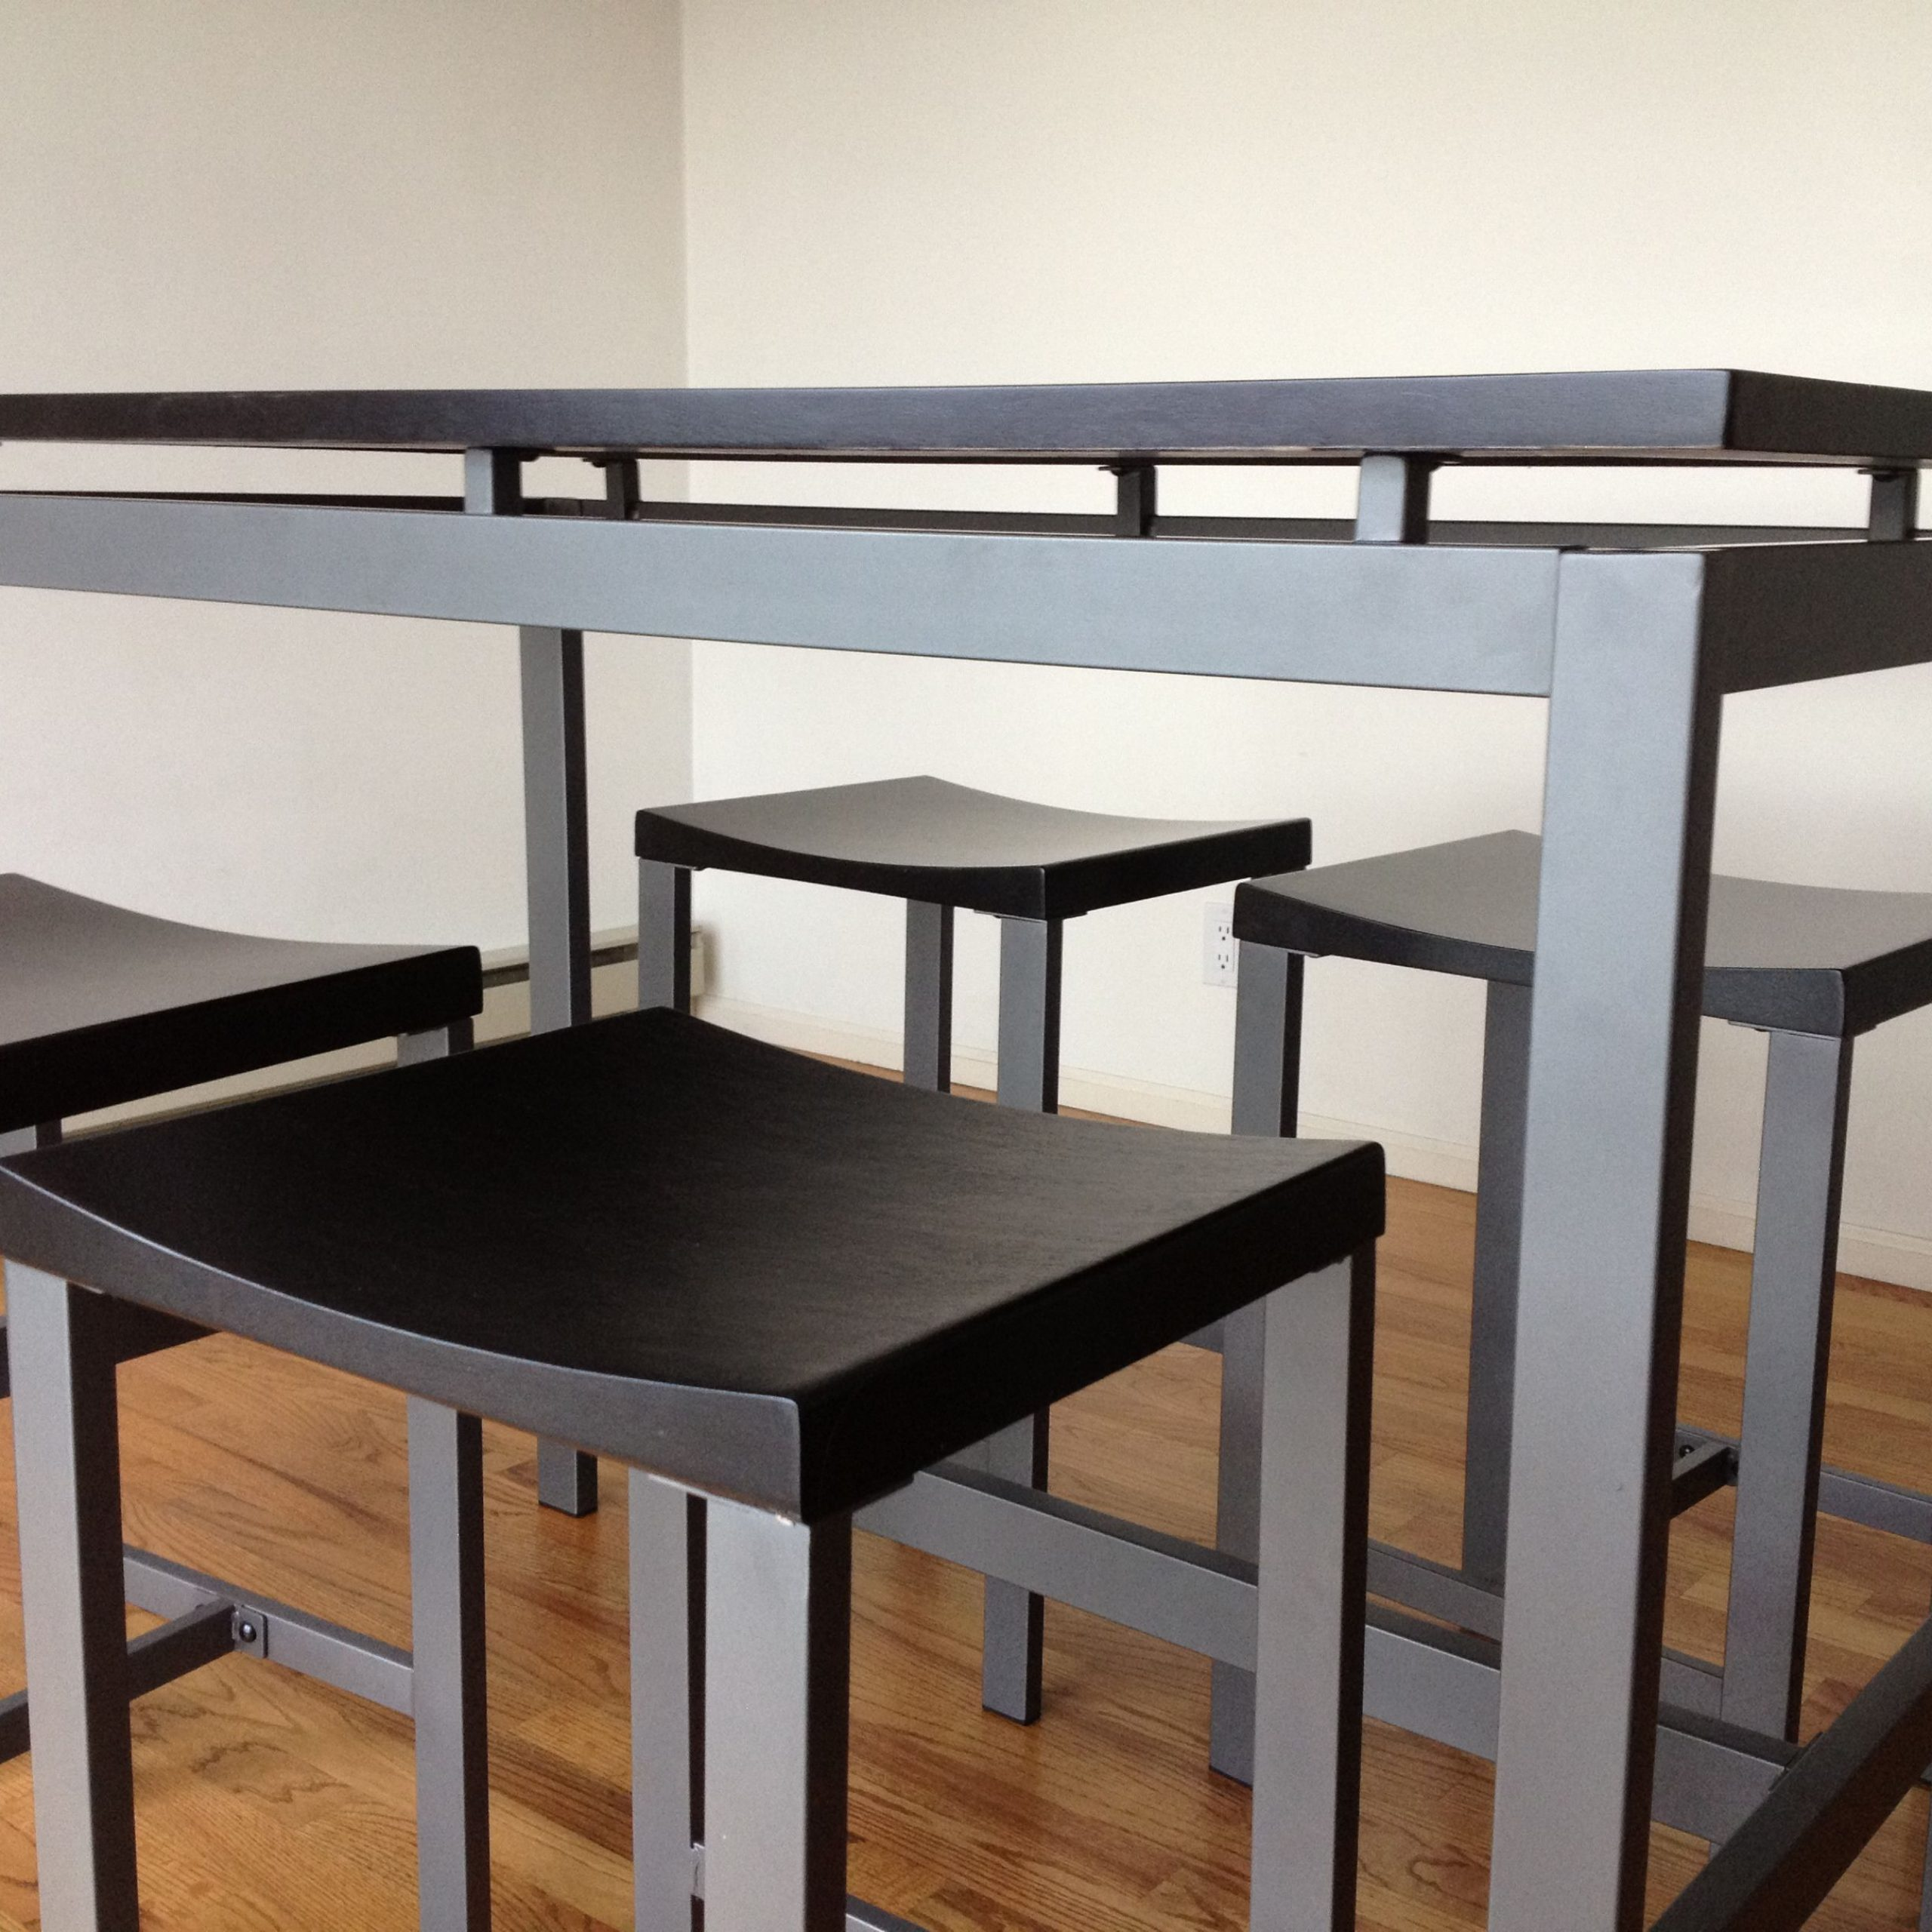 Lucy Bar Height Dining Tables Inside Most Popular Dining Table Minimalist ~ Bar Height Dining Table: Bar (View 3 of 25)